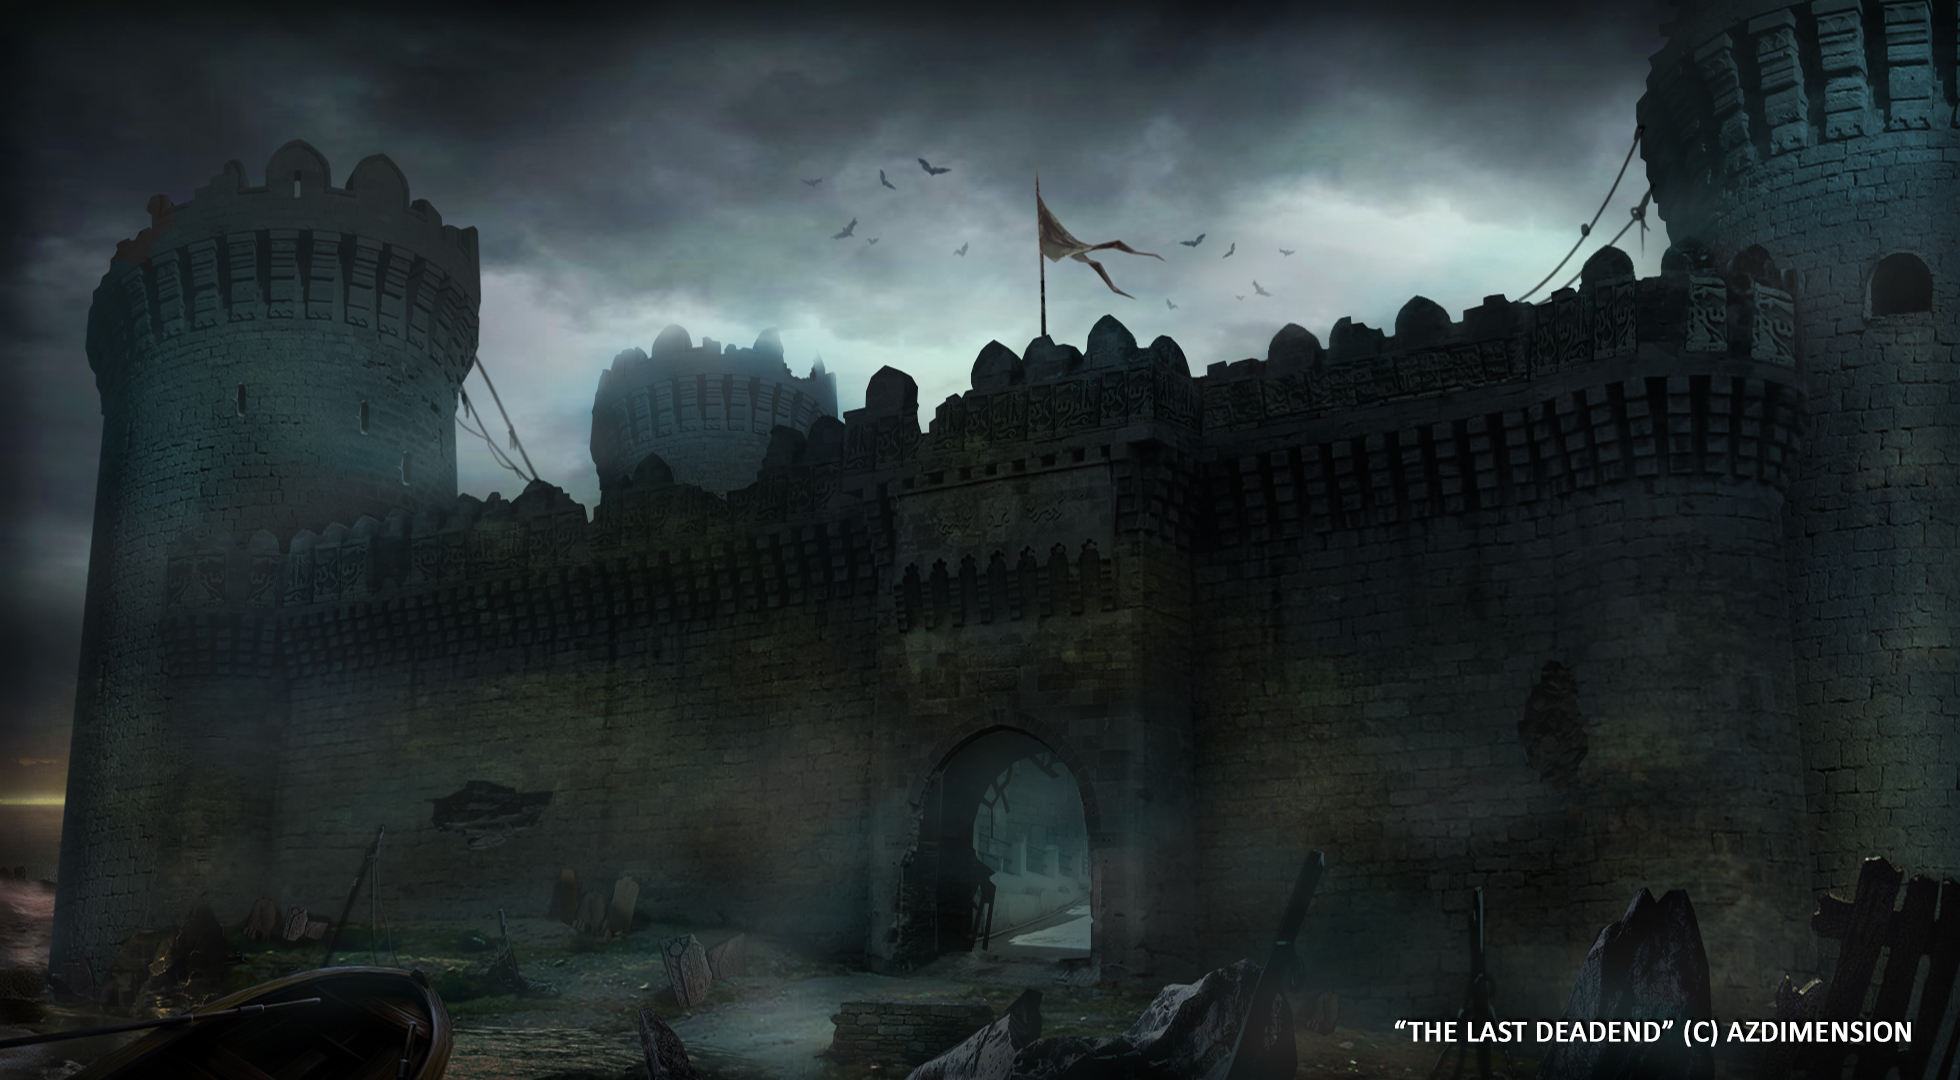 castle concept art by - photo #20